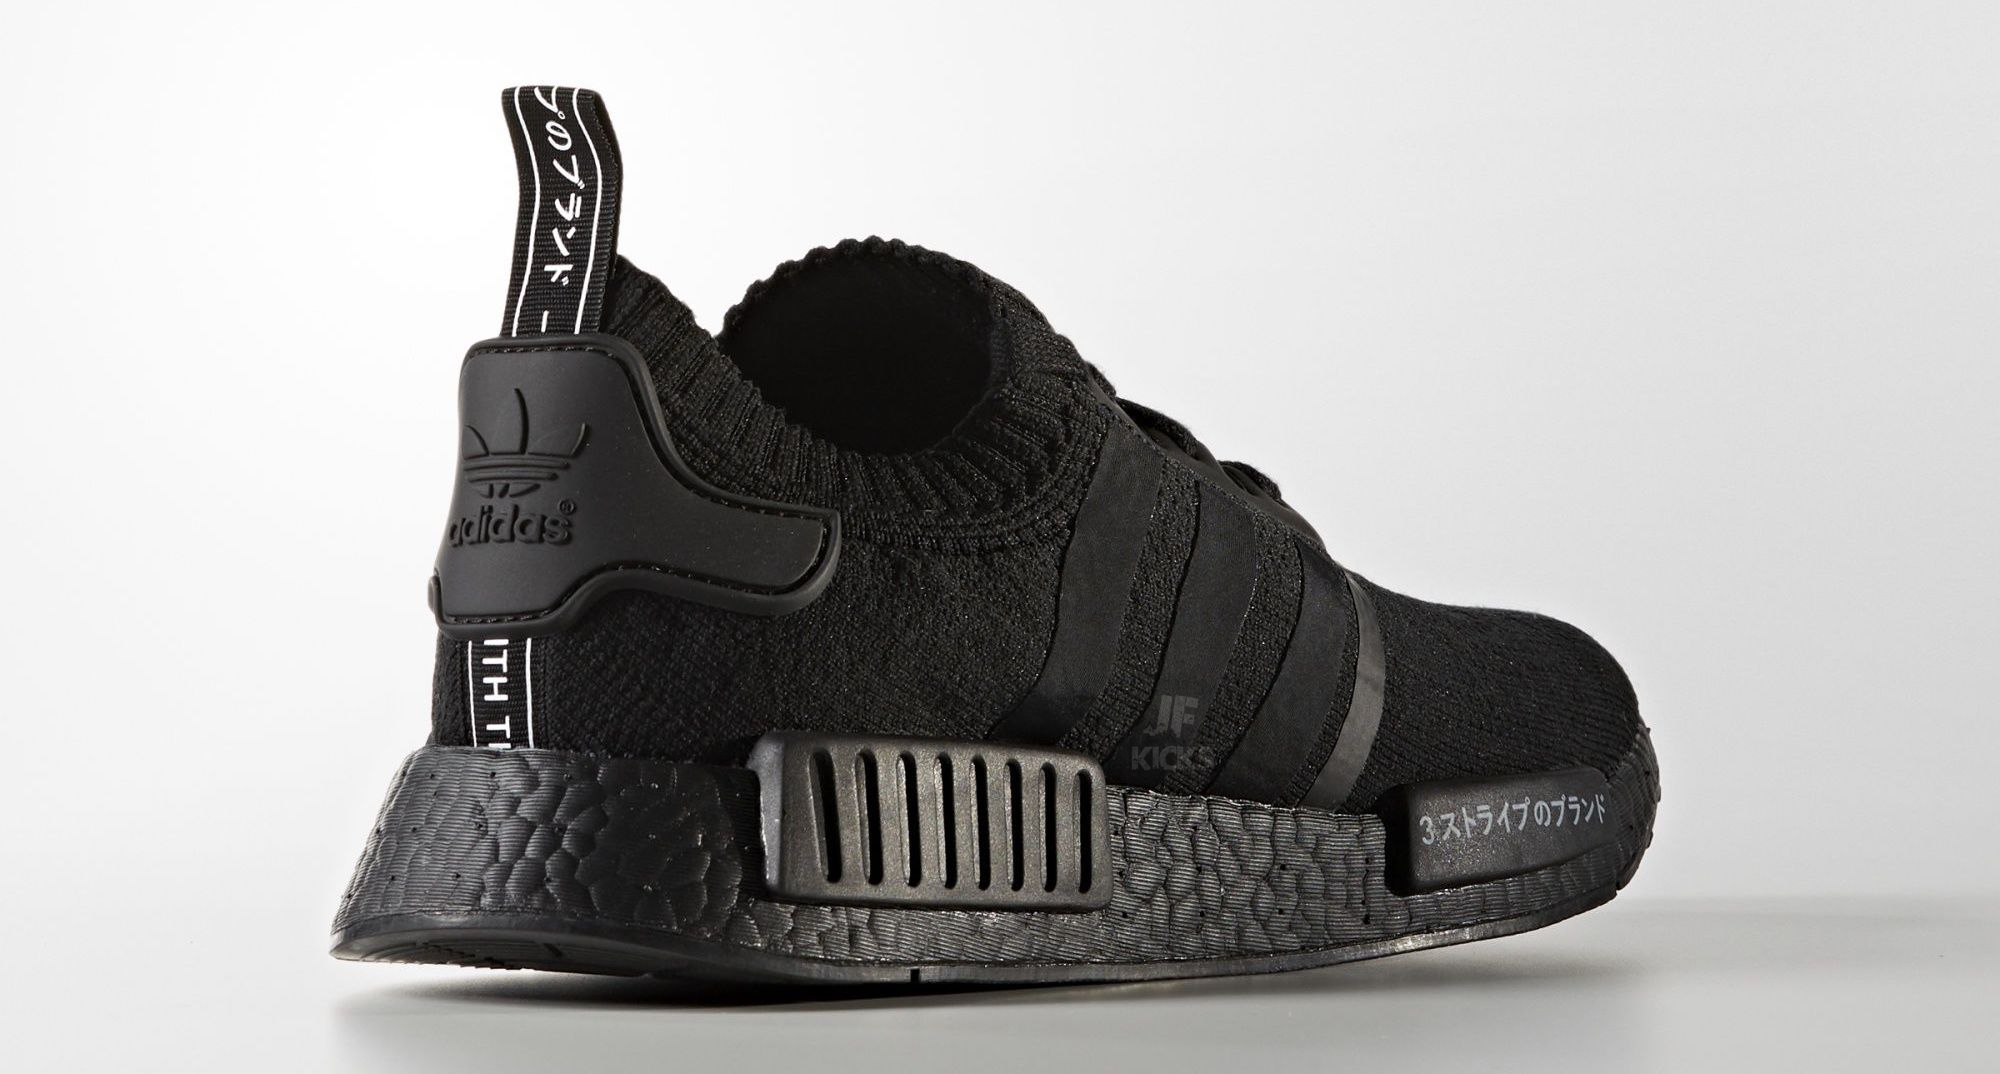 Japan Boost Nmd R1 Pk Japan Triple Black Triple White Cw Set Out To Release On August 11 Adidas Nmd R1 Primeknit Adidas Nmd Adidas